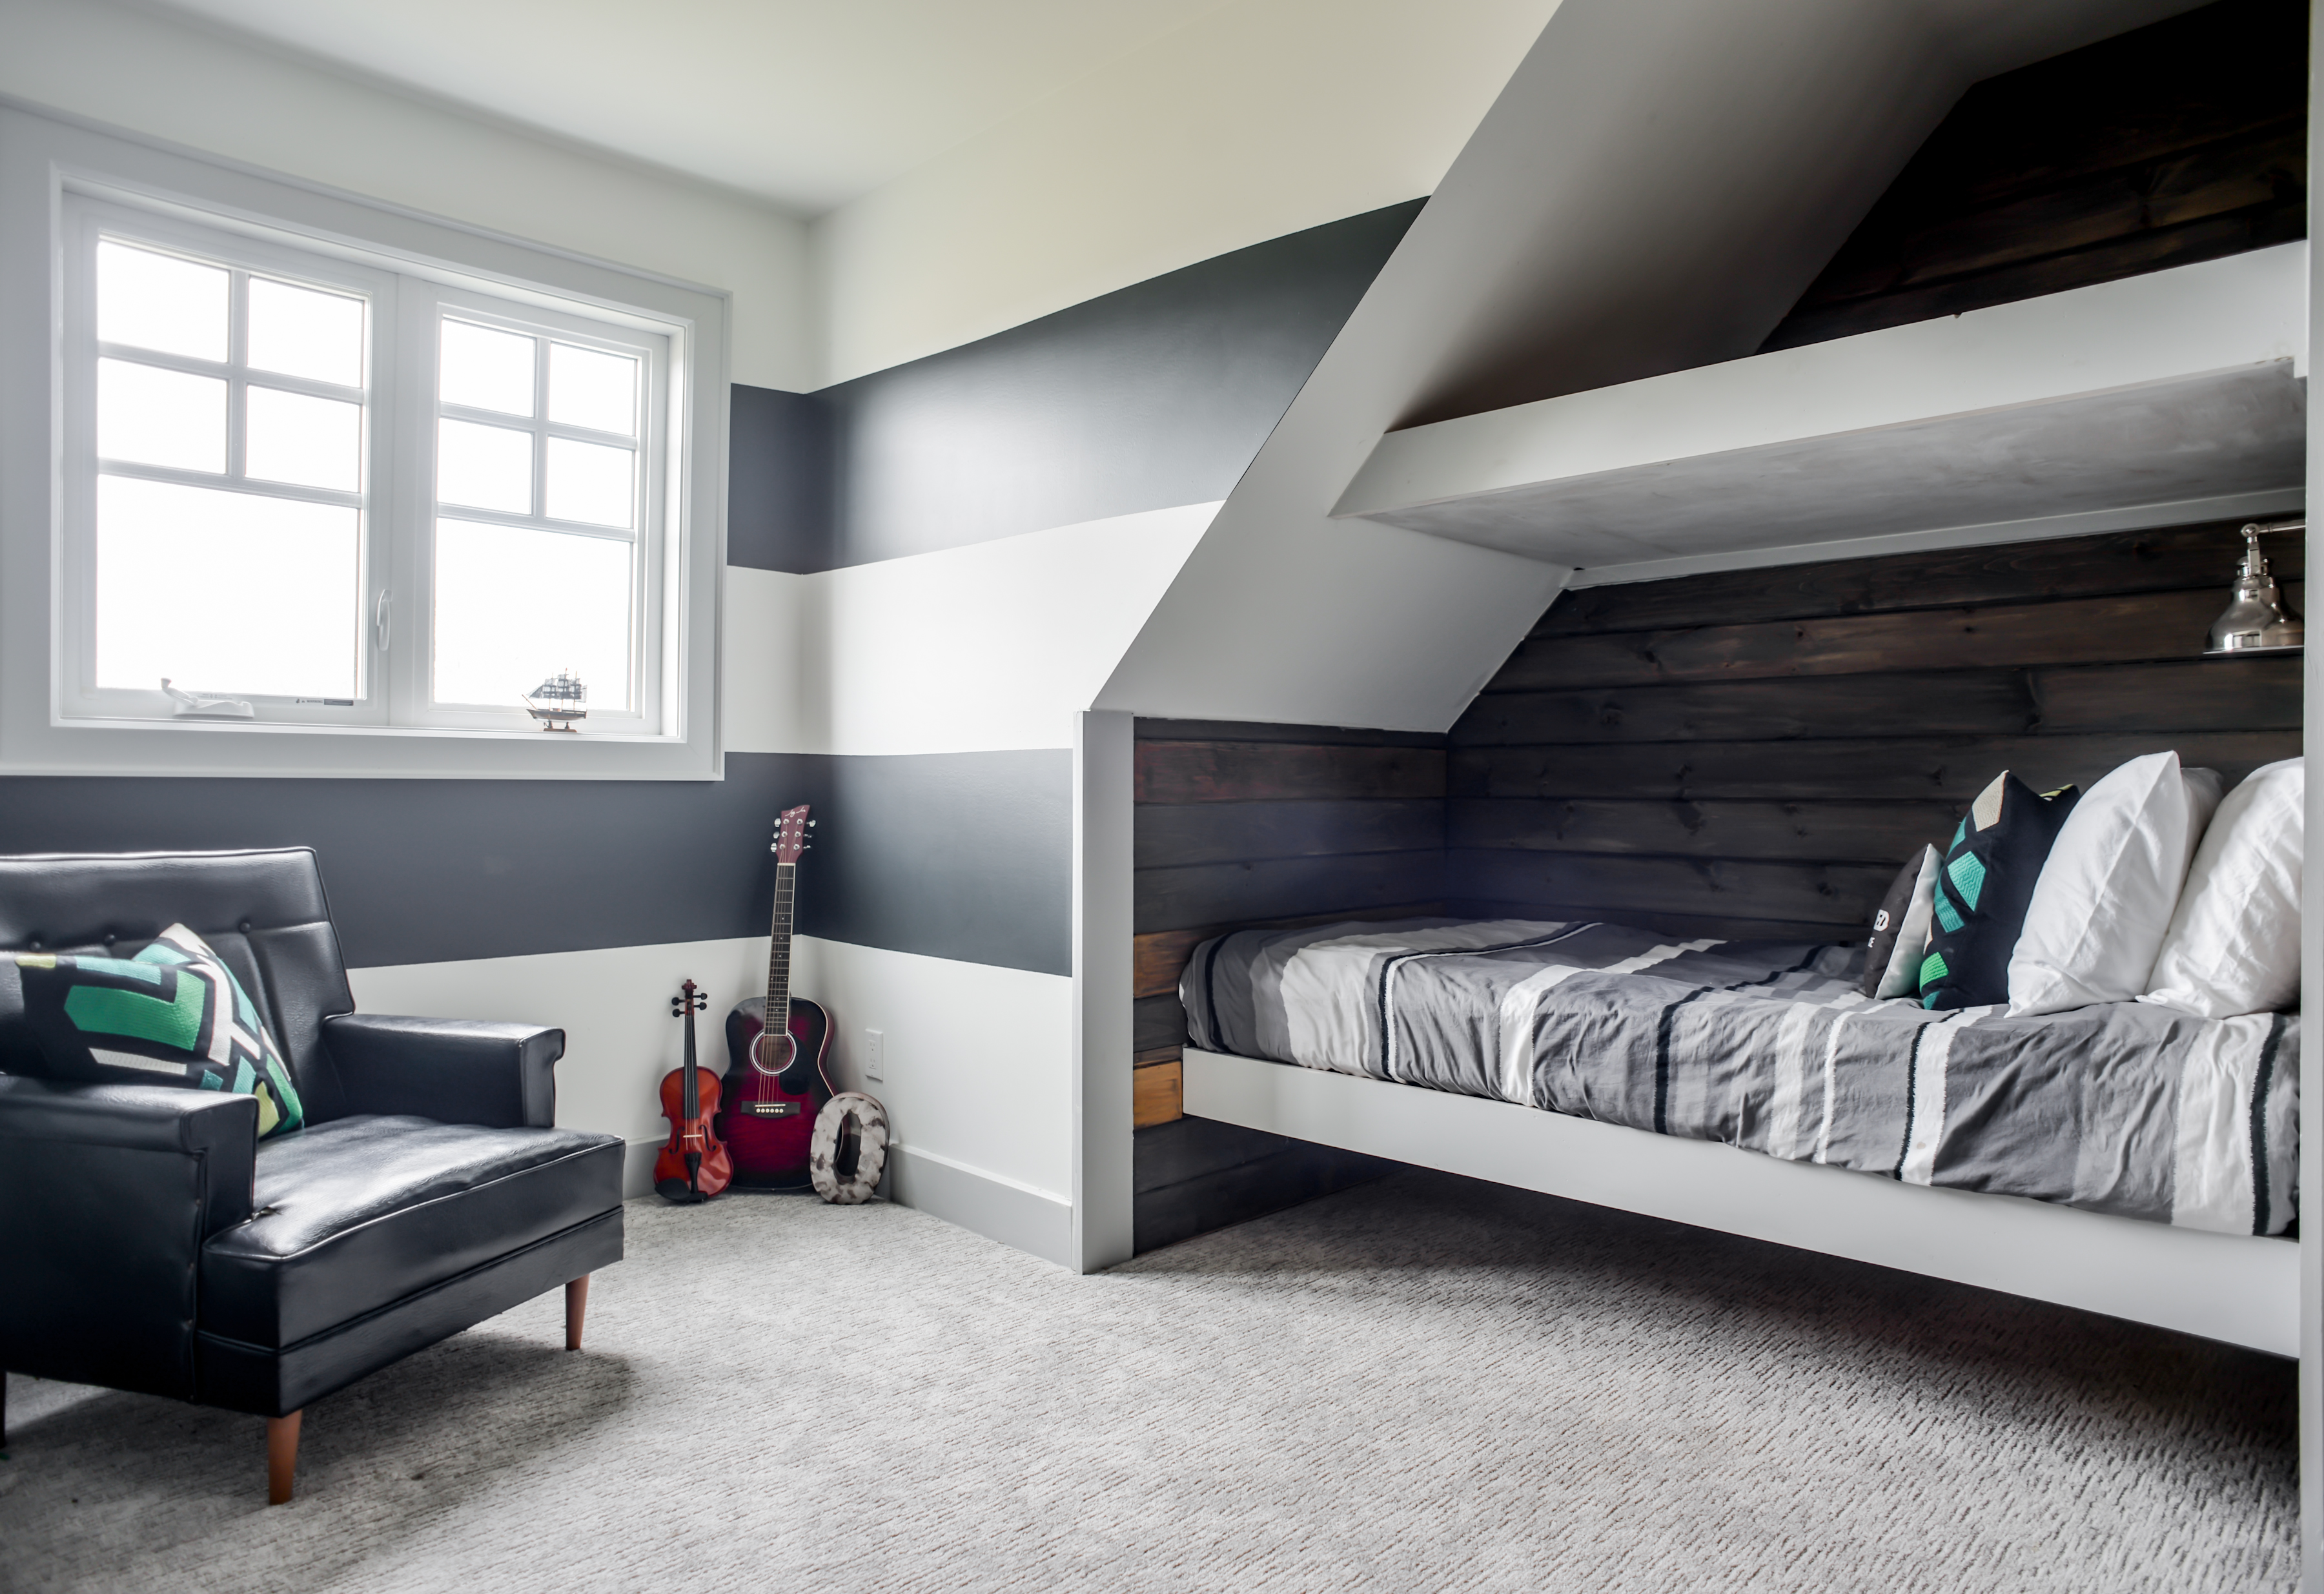 design interior before gallery bedrooms architectural digest incredible after photos transformations bedroom see all